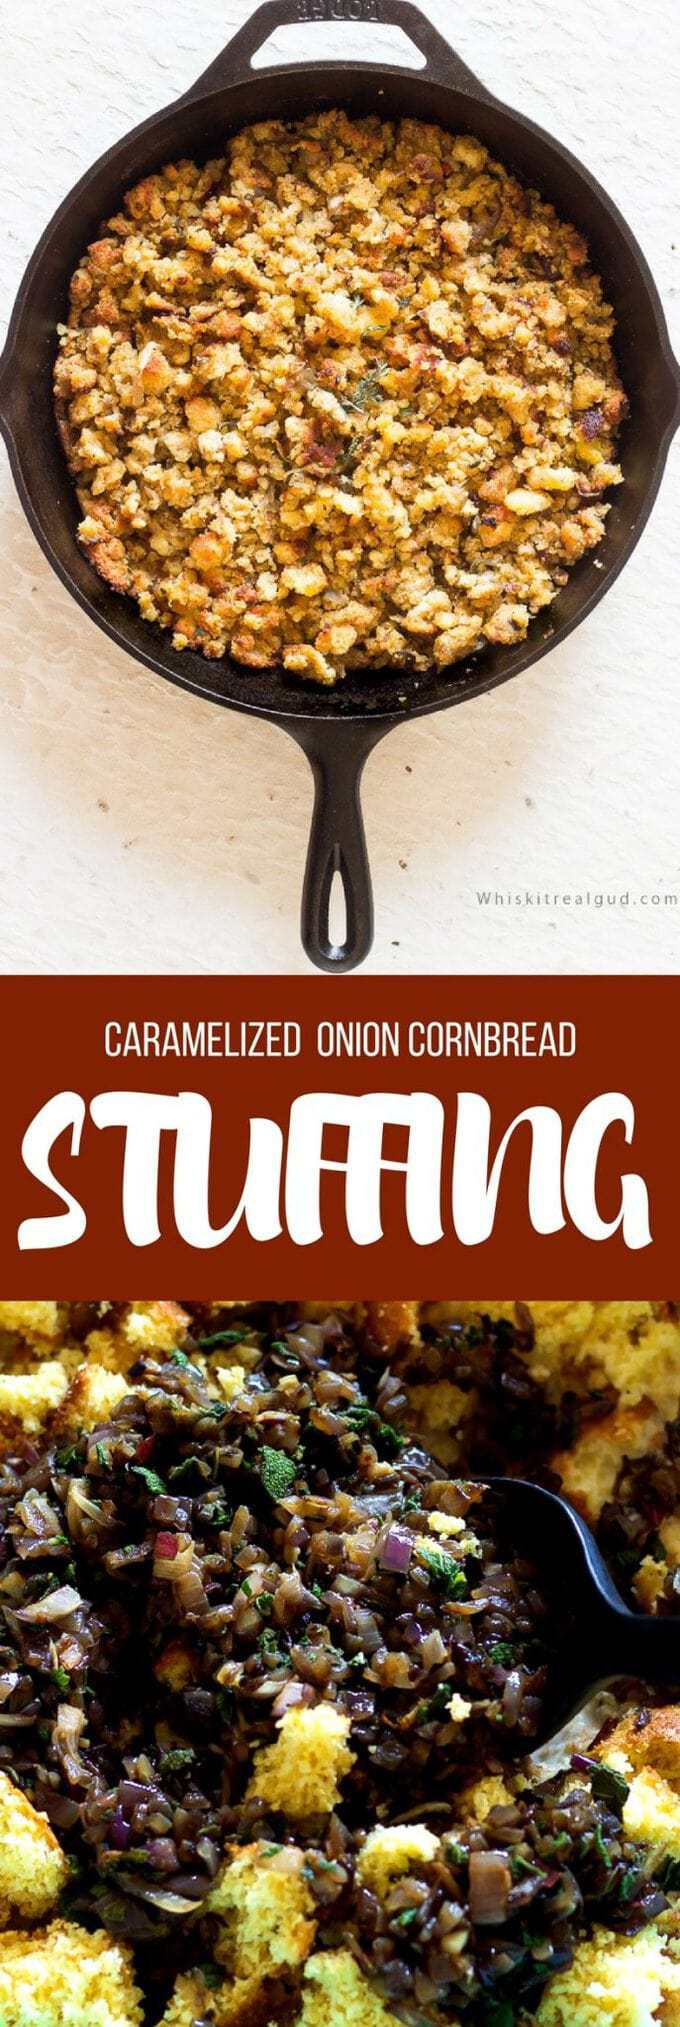 Simple Cornbread stuffing/dressing comes together easily. Caramelized onions, sweet corn muffins and fresh sage. This Cornbread stuffing is moist with a slightly craggy soft top. Simply delicious!